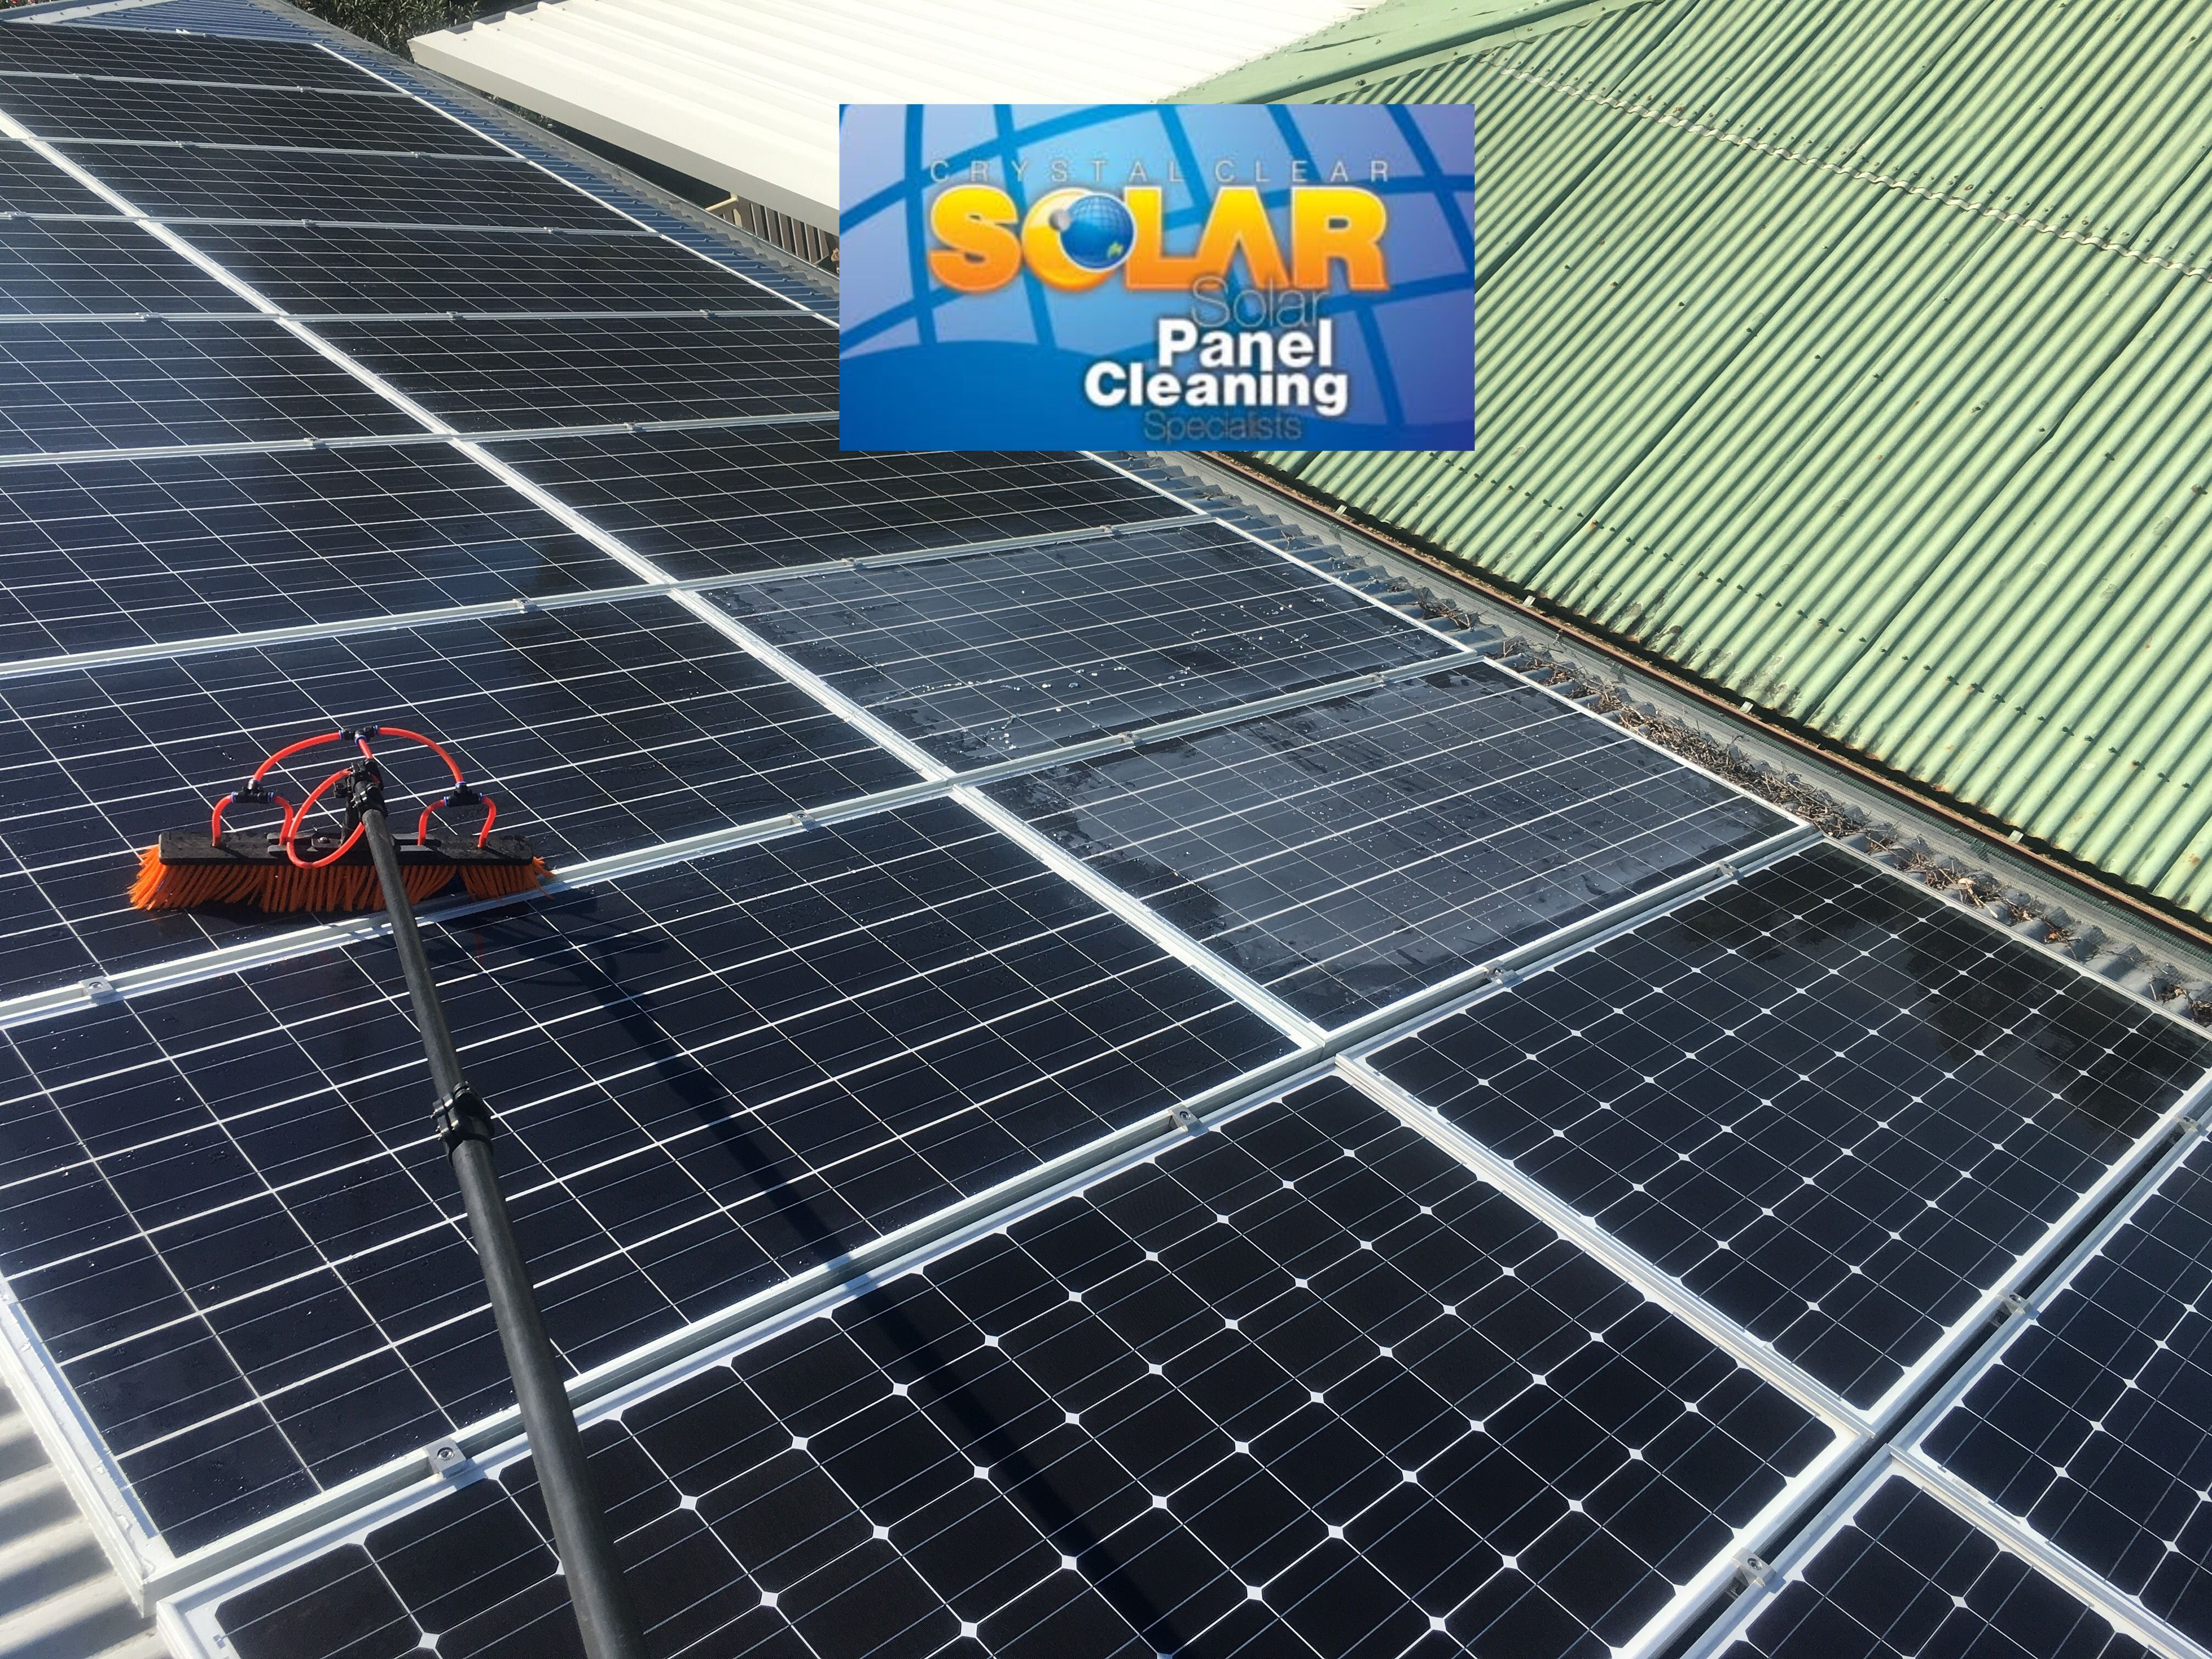 Pin By Crystal Clear Solar On Panel Cleaning Residential Solar Panels Solar Panels Outdoor Decor